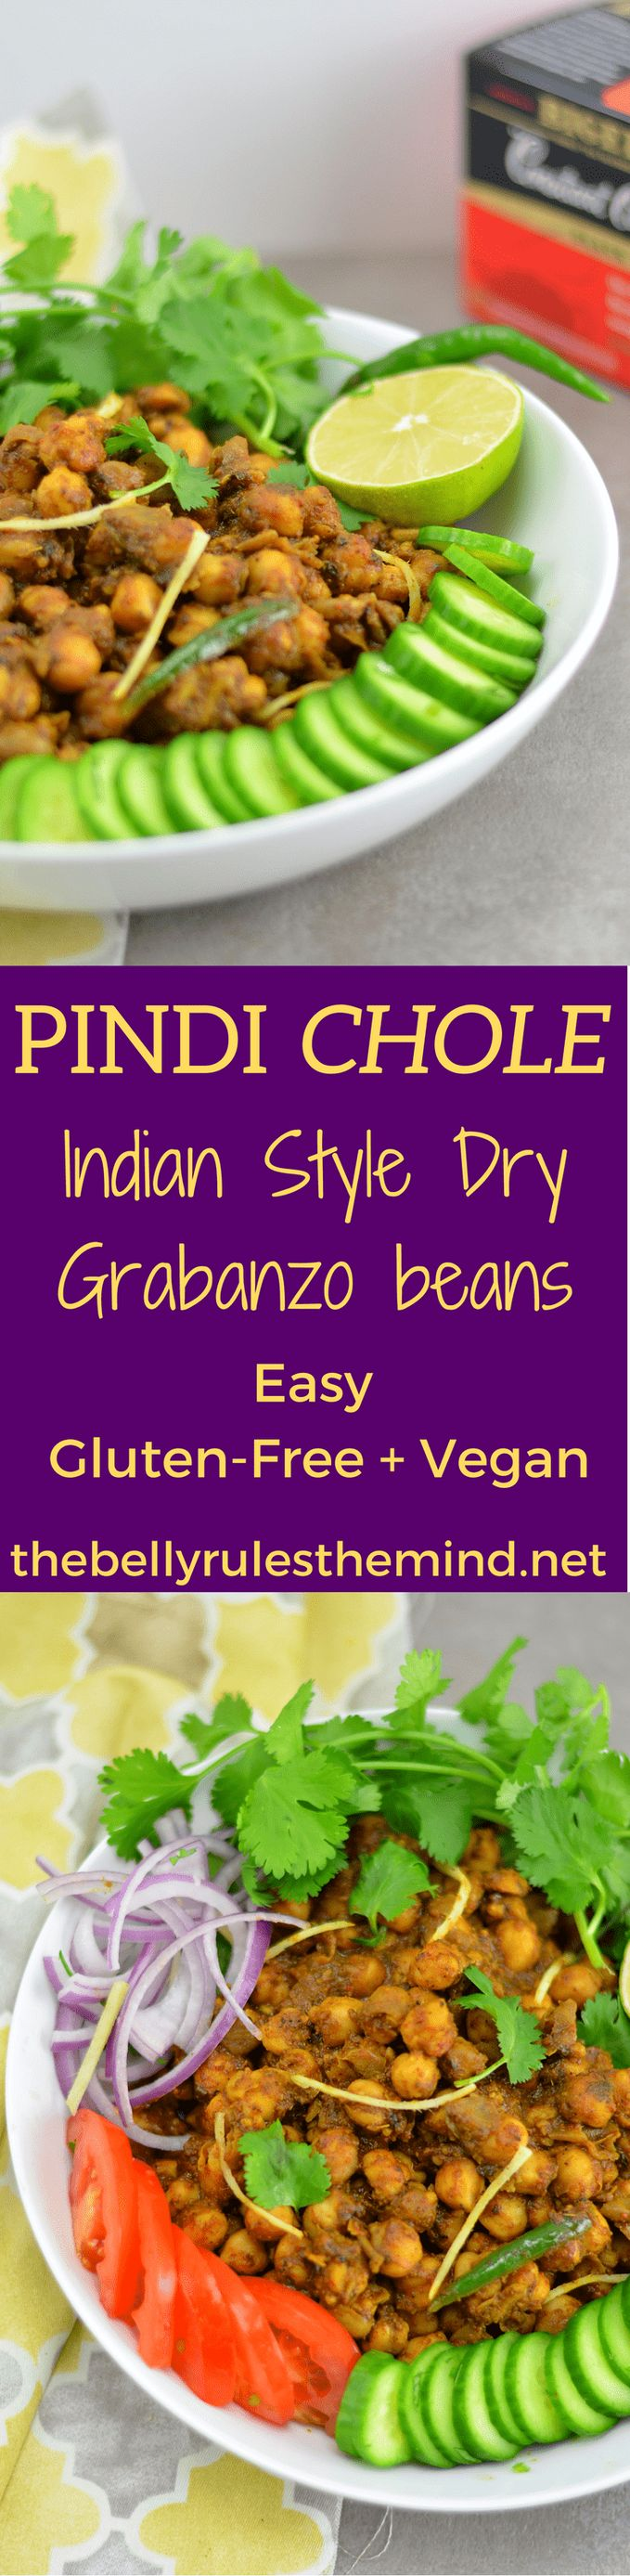 This Pindi Chole (Garbanzo beans in Indian spices) recipe is known for its authentic spicy flavors and mild sour taste.  #ad #TeaProudly #CollectiveBias.    @bellyrulesdmind #granbanzo beans #chole #chanamasala